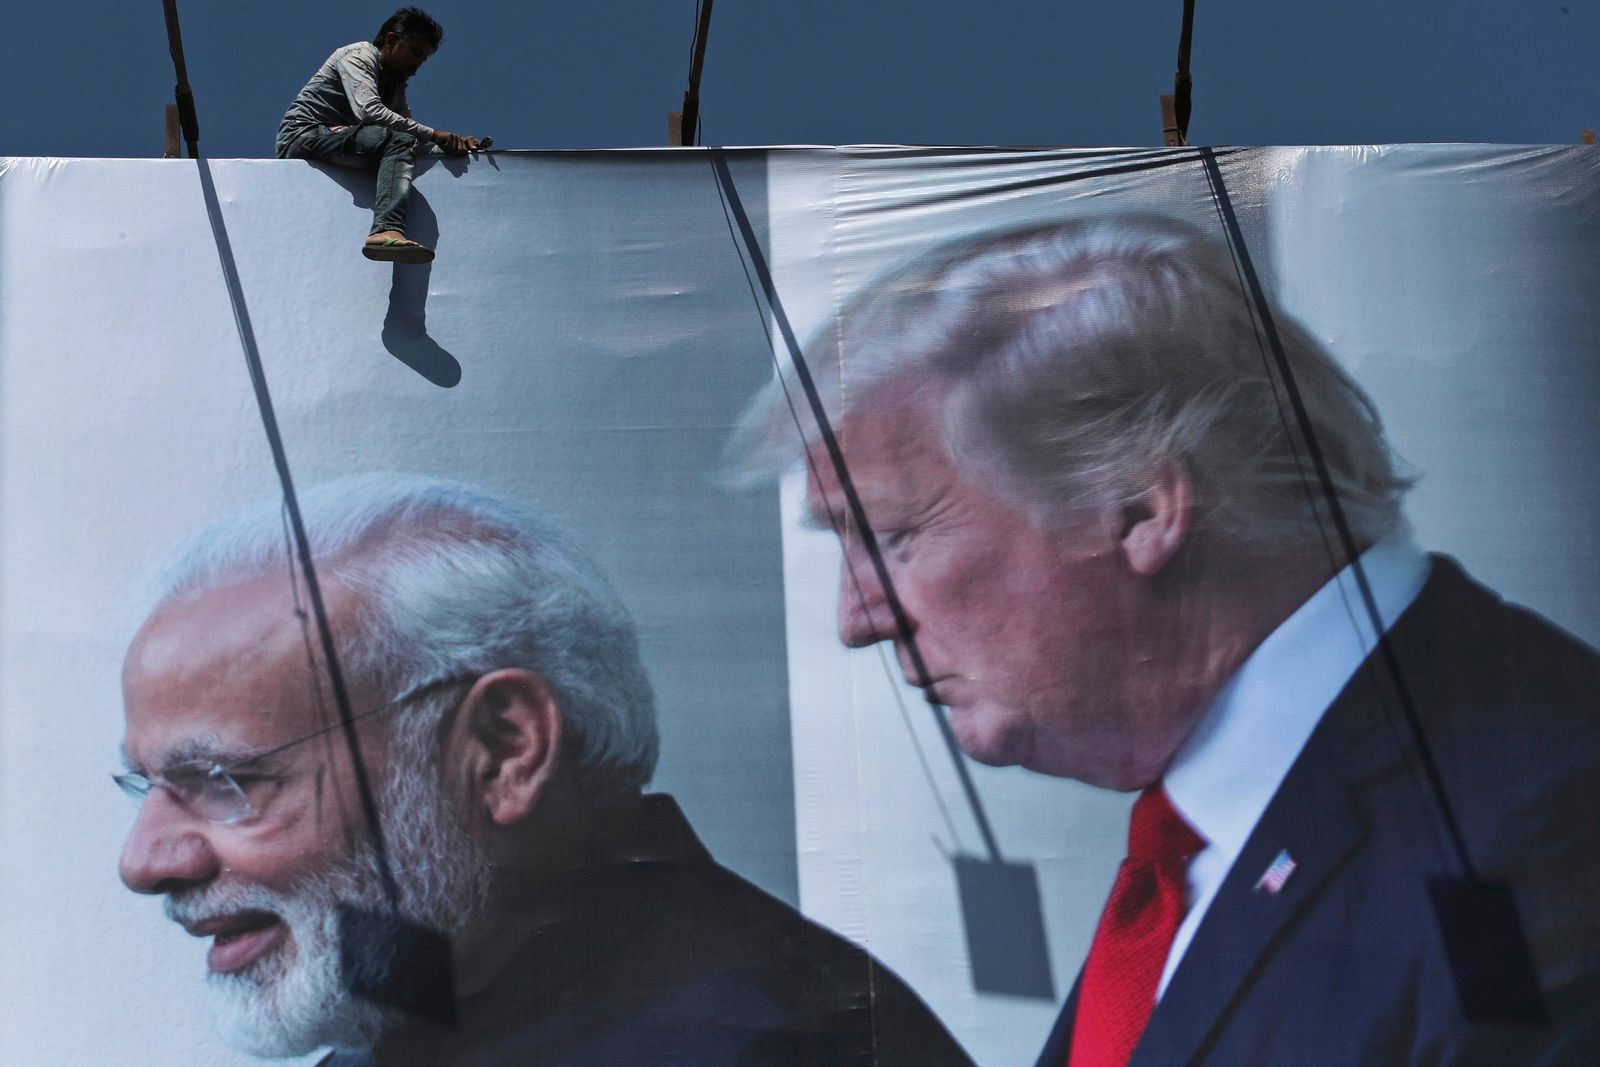 An Indian worker installs a giant hoarding welcoming U.S. President Donald Trump ahead of his visit, in Ahmadabad, India, Thursday, Feb. 20, 2020. Trump is scheduled to visit the city during his Feb. 24-25 India trip. (AP Photo/Ajit Solanki)